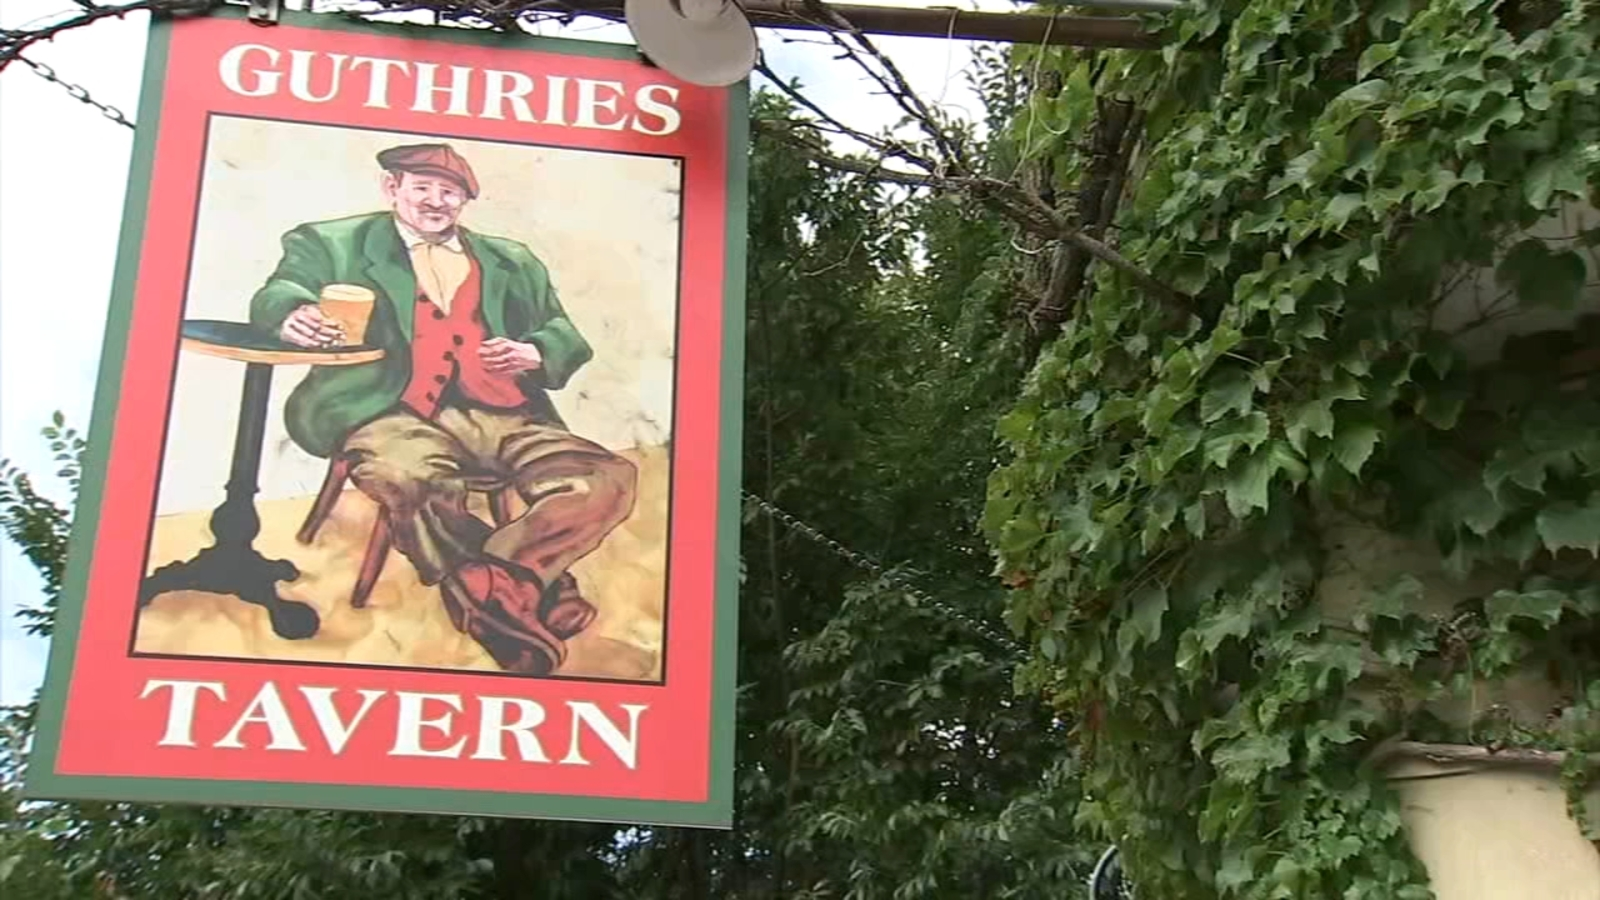 Guthries Tavern in Lakeview will reopen under new ownership